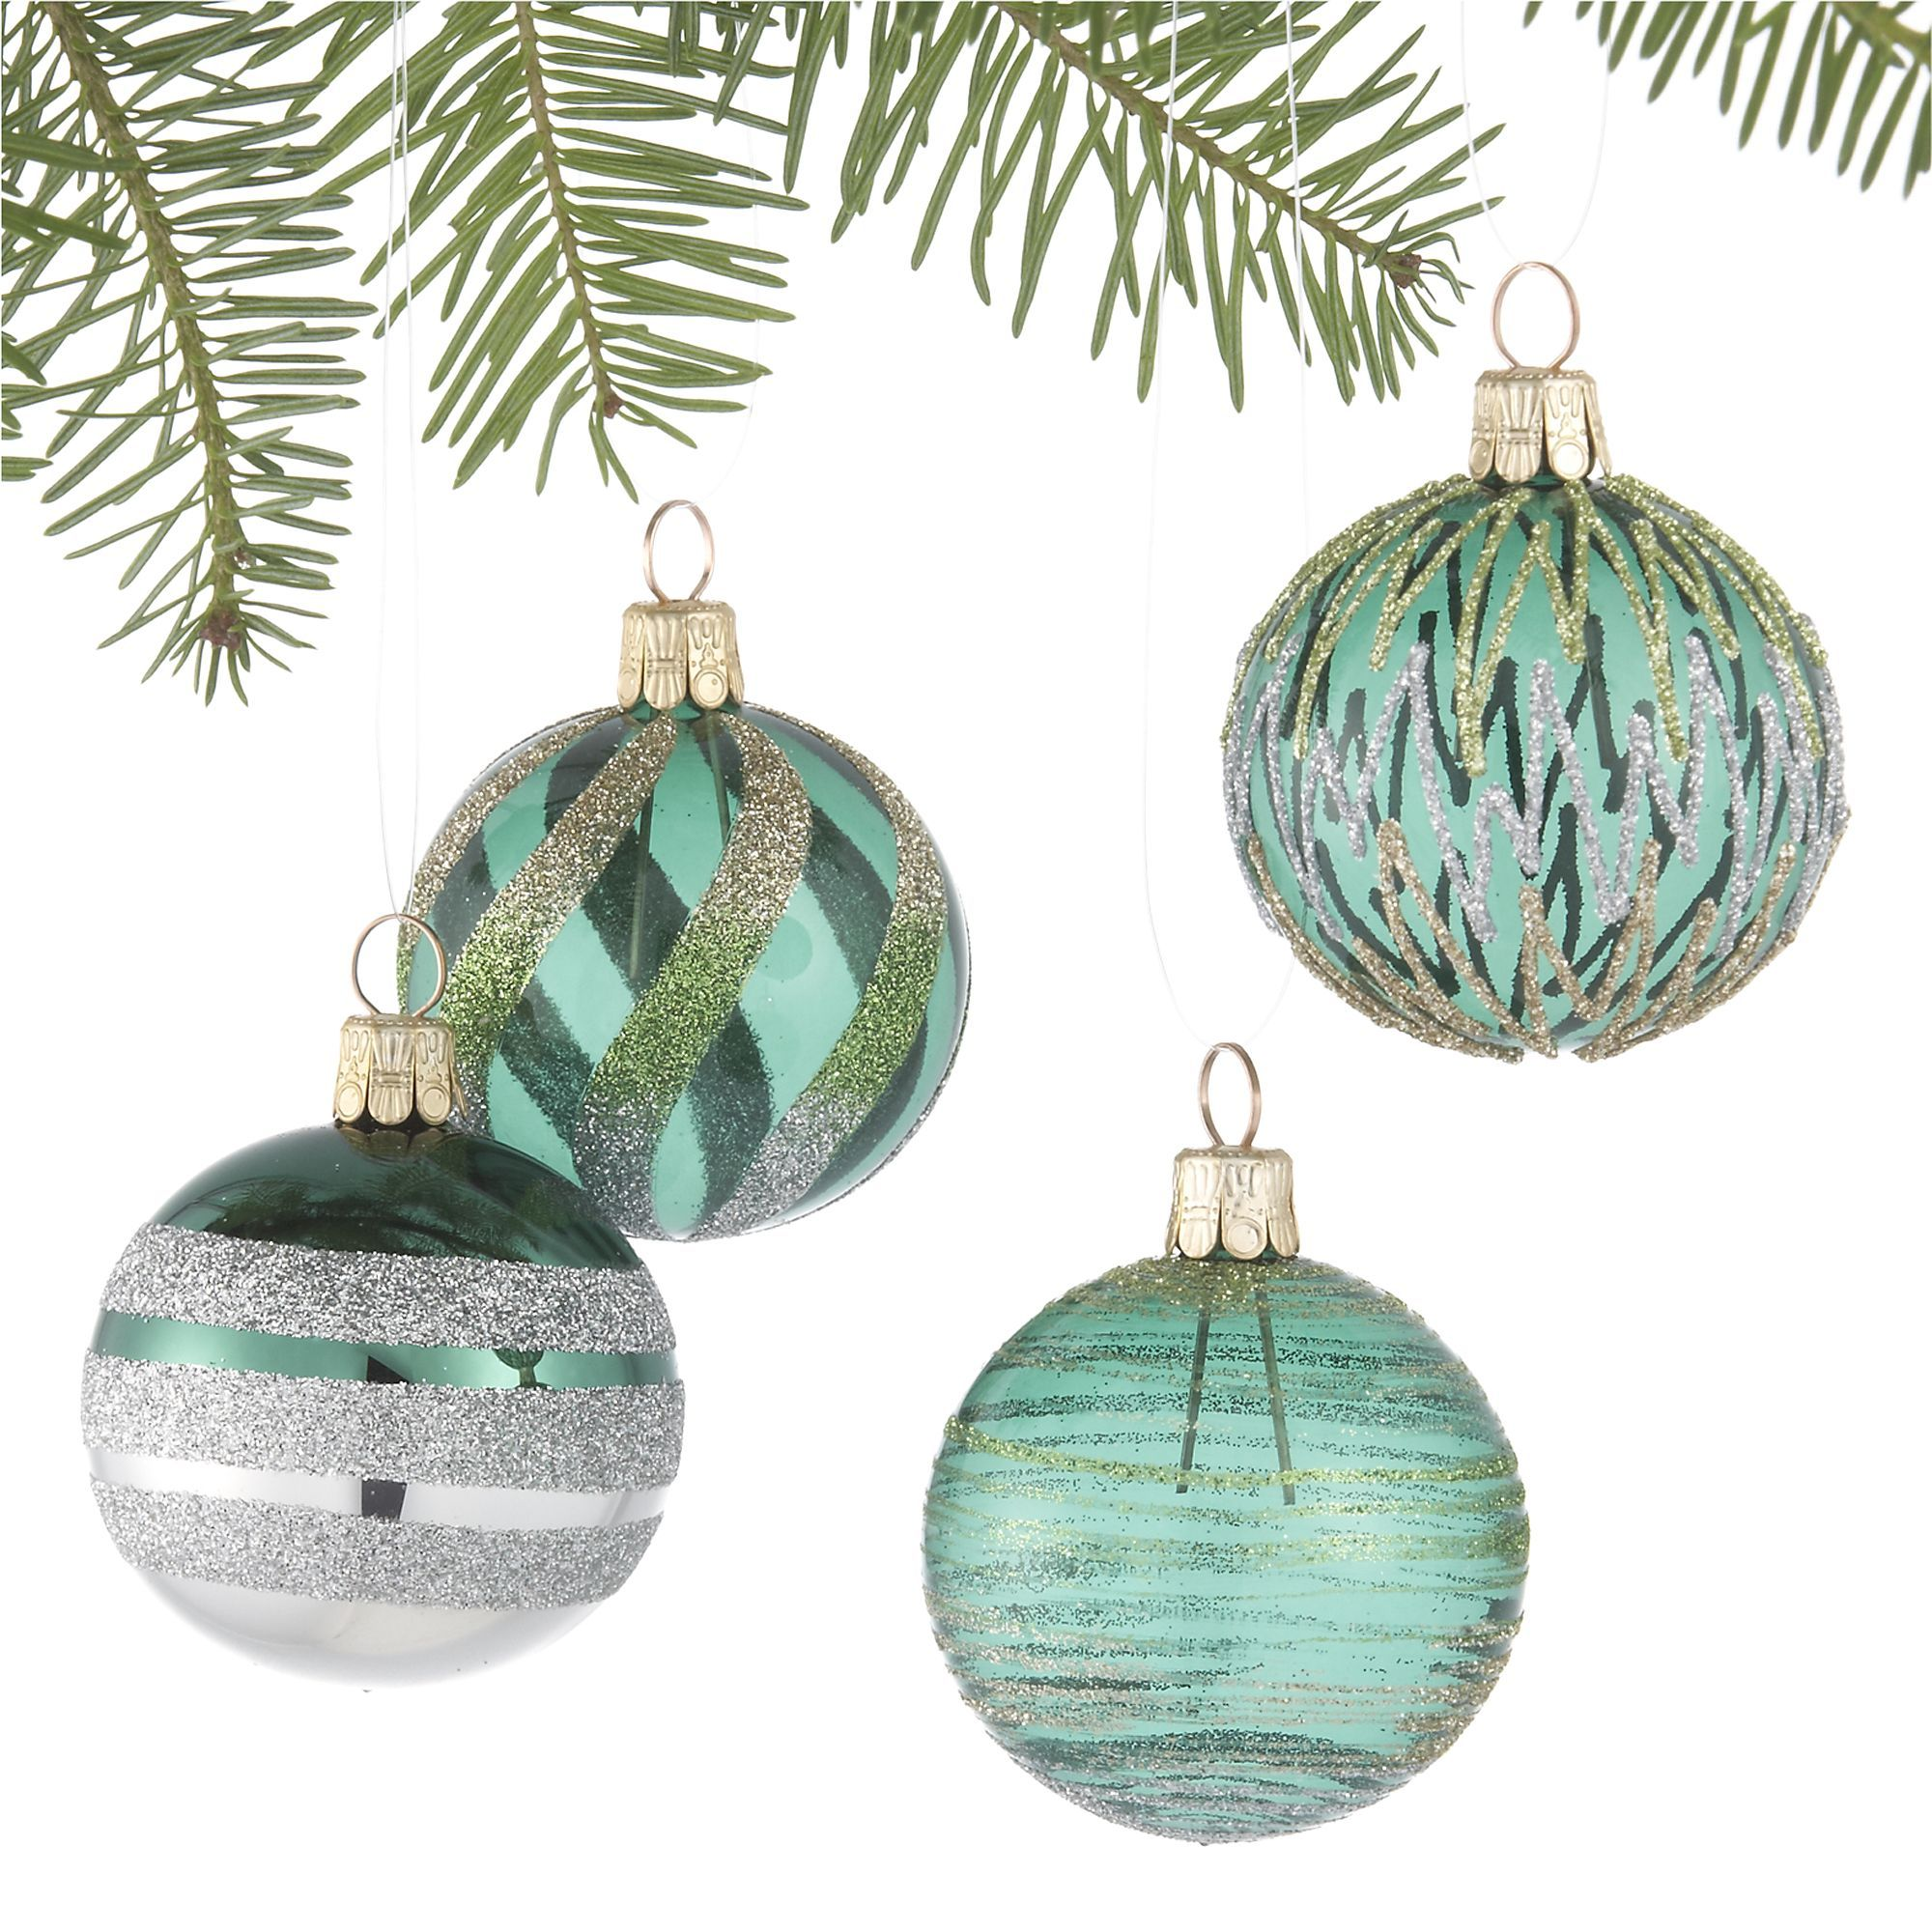 Set Of 4 Glitter Design Tonal Green Ball Ornaments In Christmas Ornaments Crate And B Silver Christmas Decorations Christmas Ornaments Hand Painted Ornaments